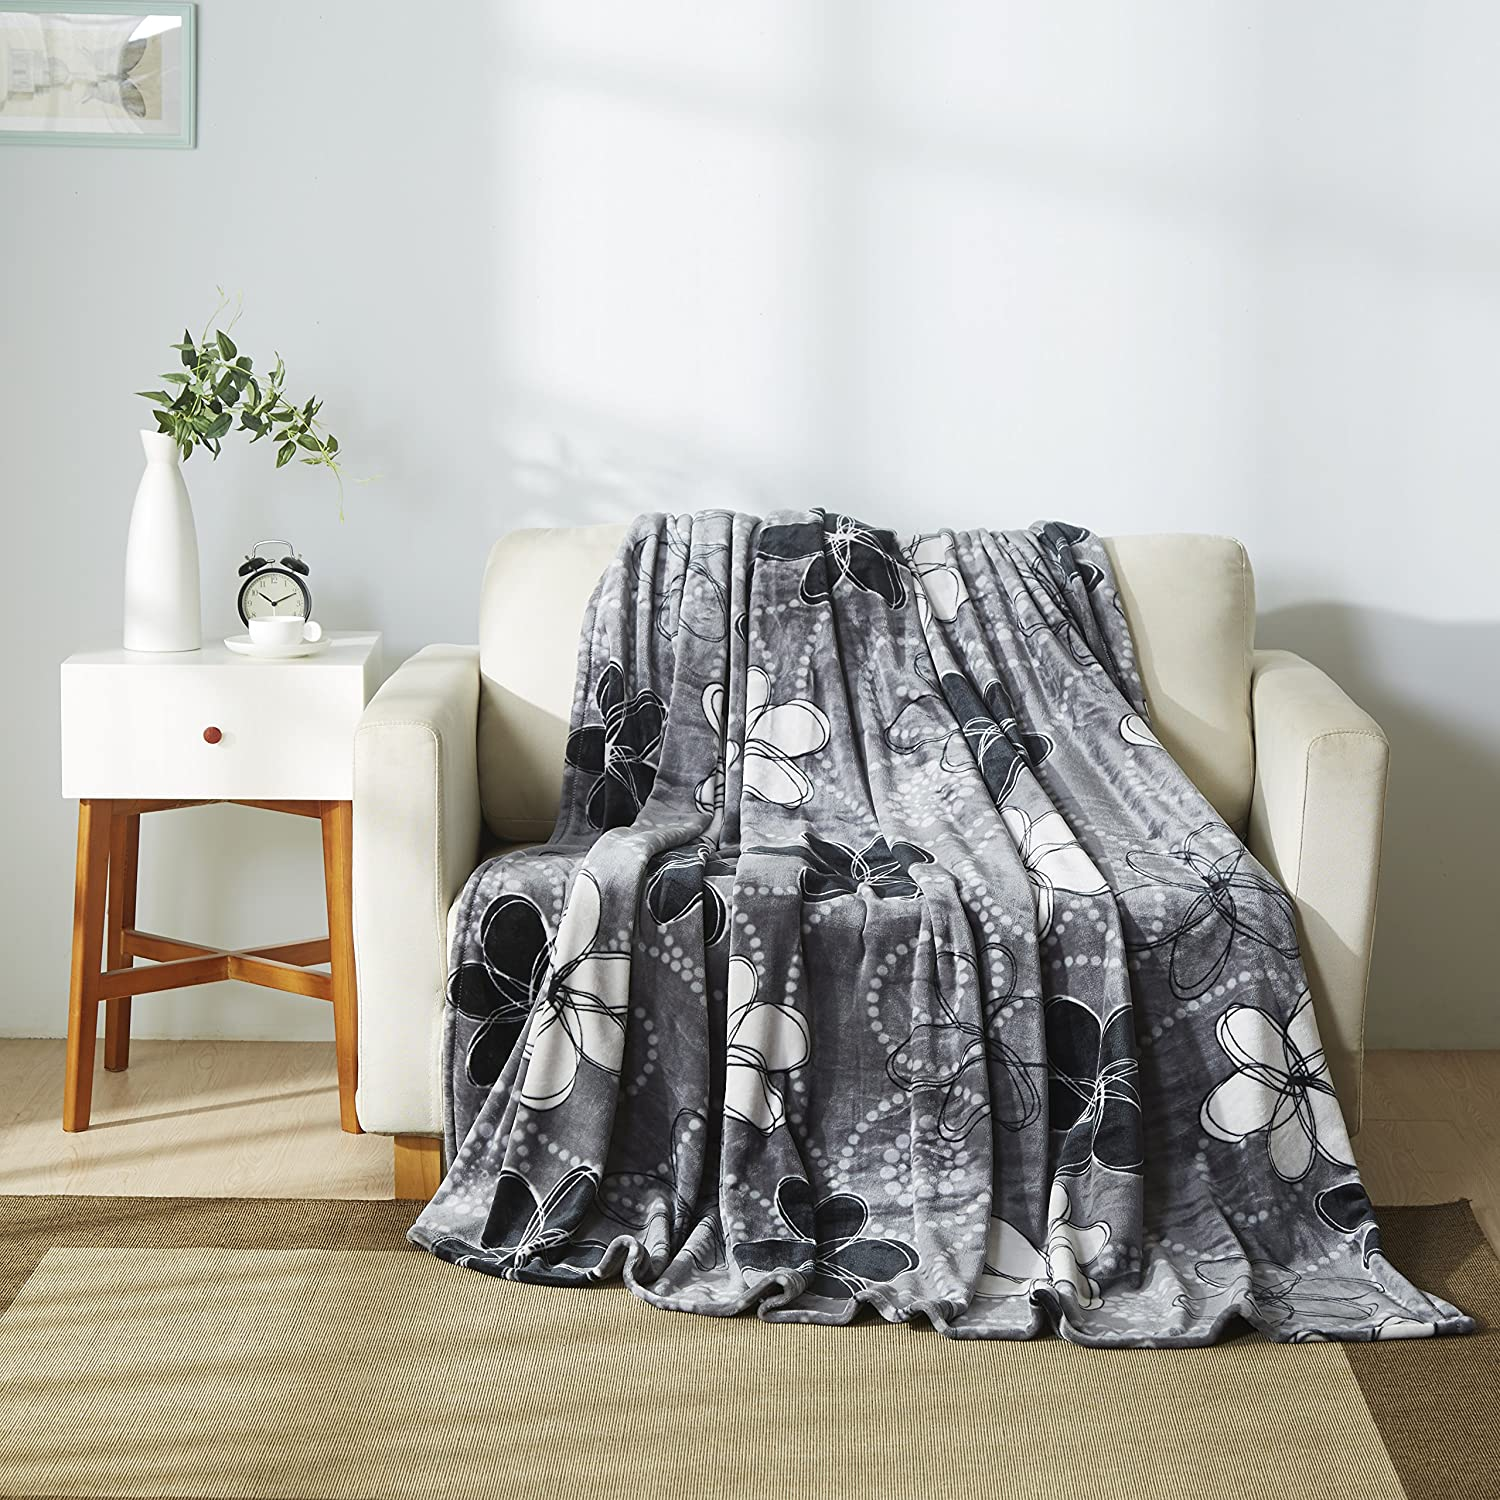 Throw Blanket (Queen Size, Grey/ White